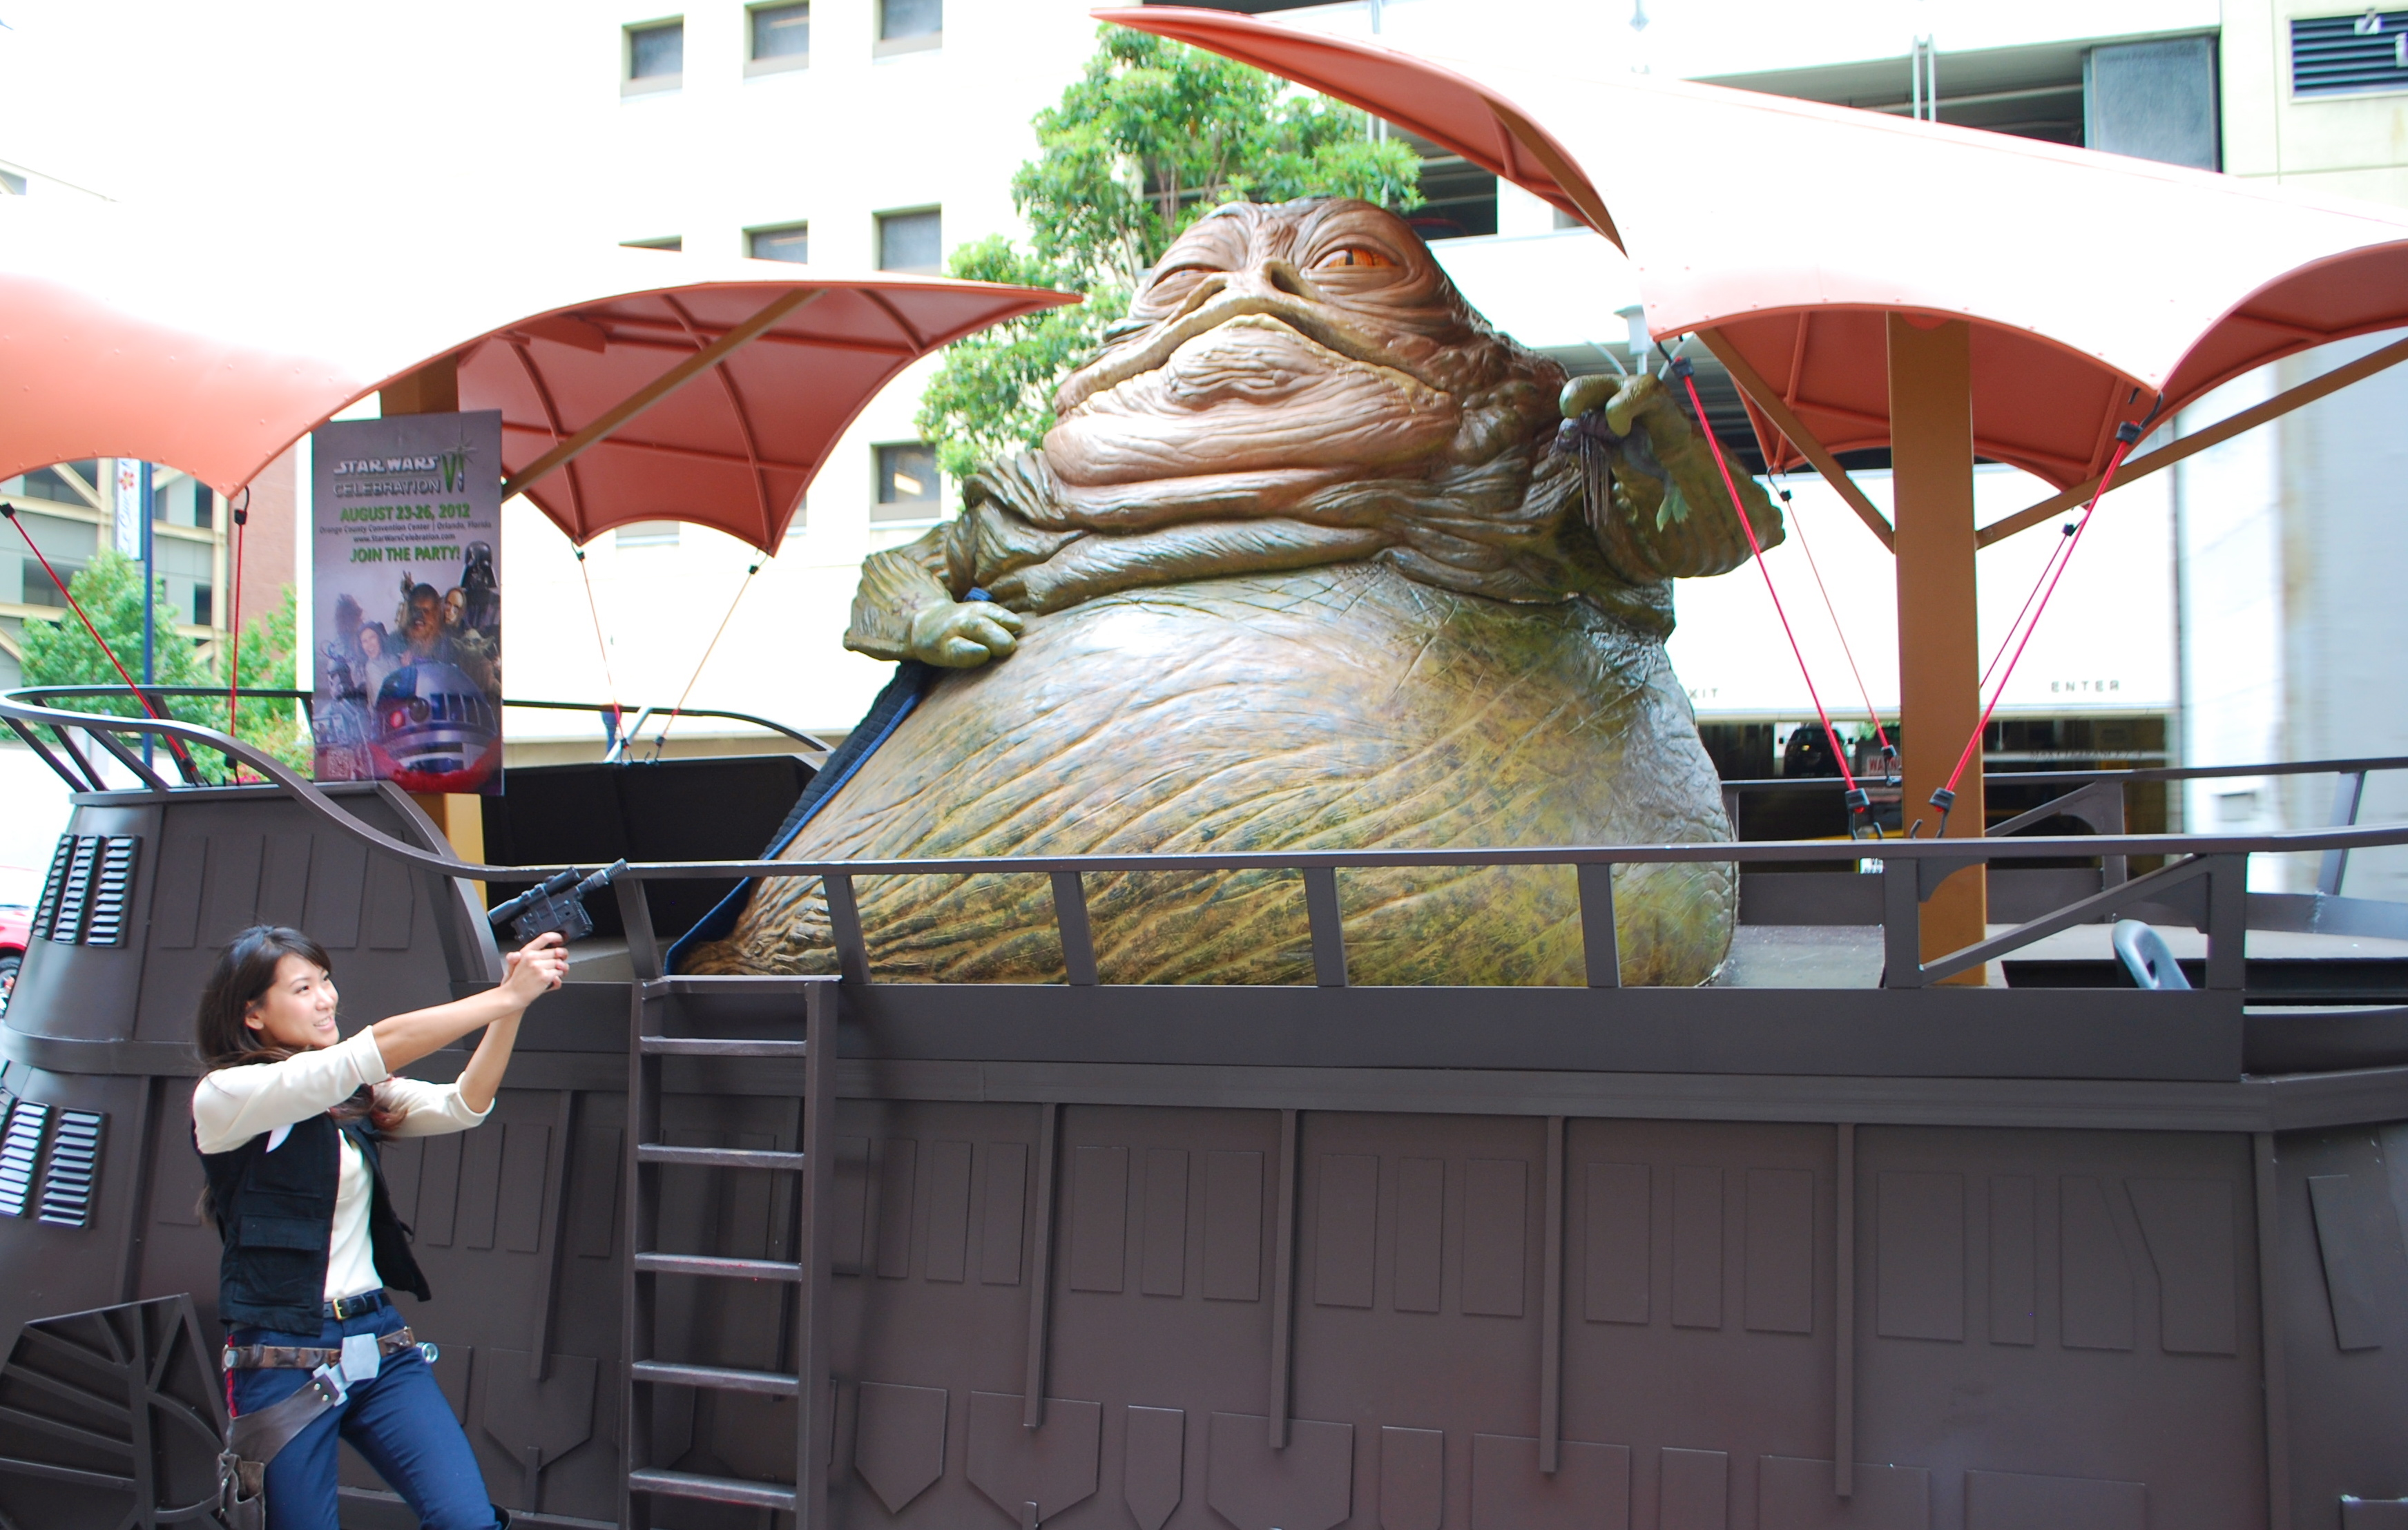 Female Han Solo Cosplay and Jabba the Hutt - San Diego ... Jabba The Hutt Cosplay